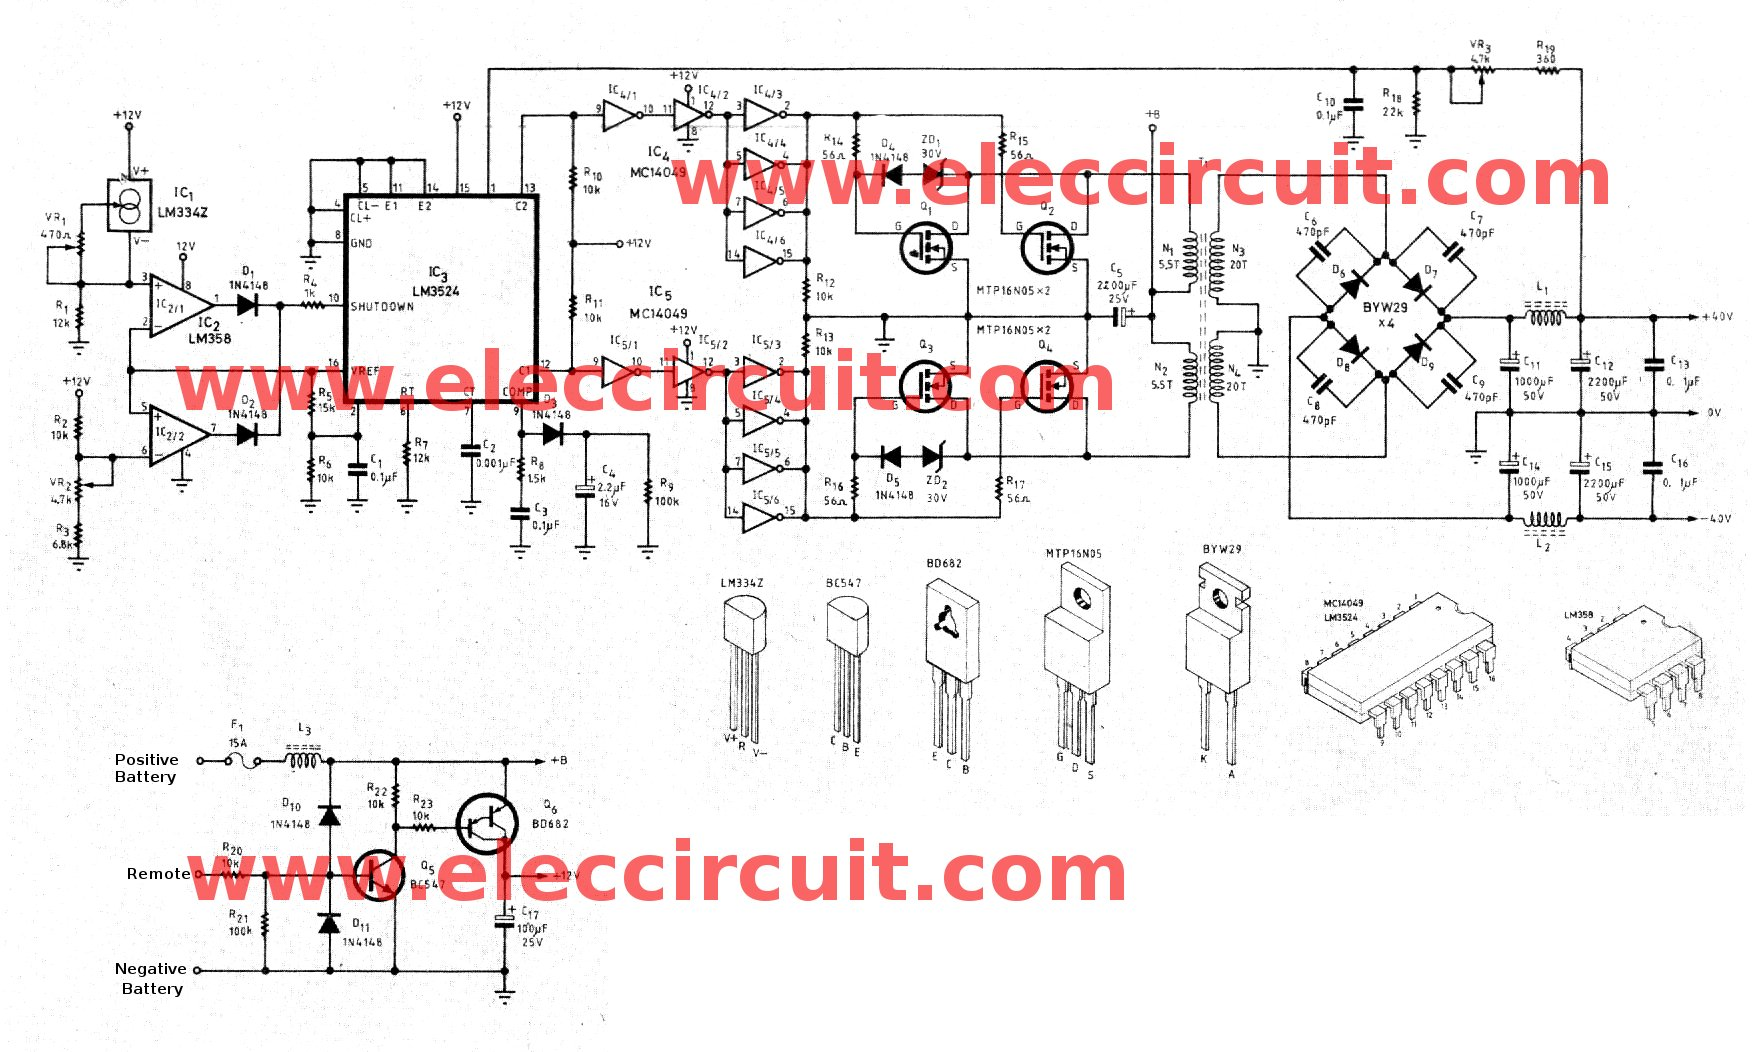 Watch also Modifying Lm2596 Circuit With Ad5206 further Circuito De Dimmer Usando Transistor Mosfet also Solar Induction Heater Circuit as well 12vdc To 37v Dc Converter By Sg3524. on step down converter controller